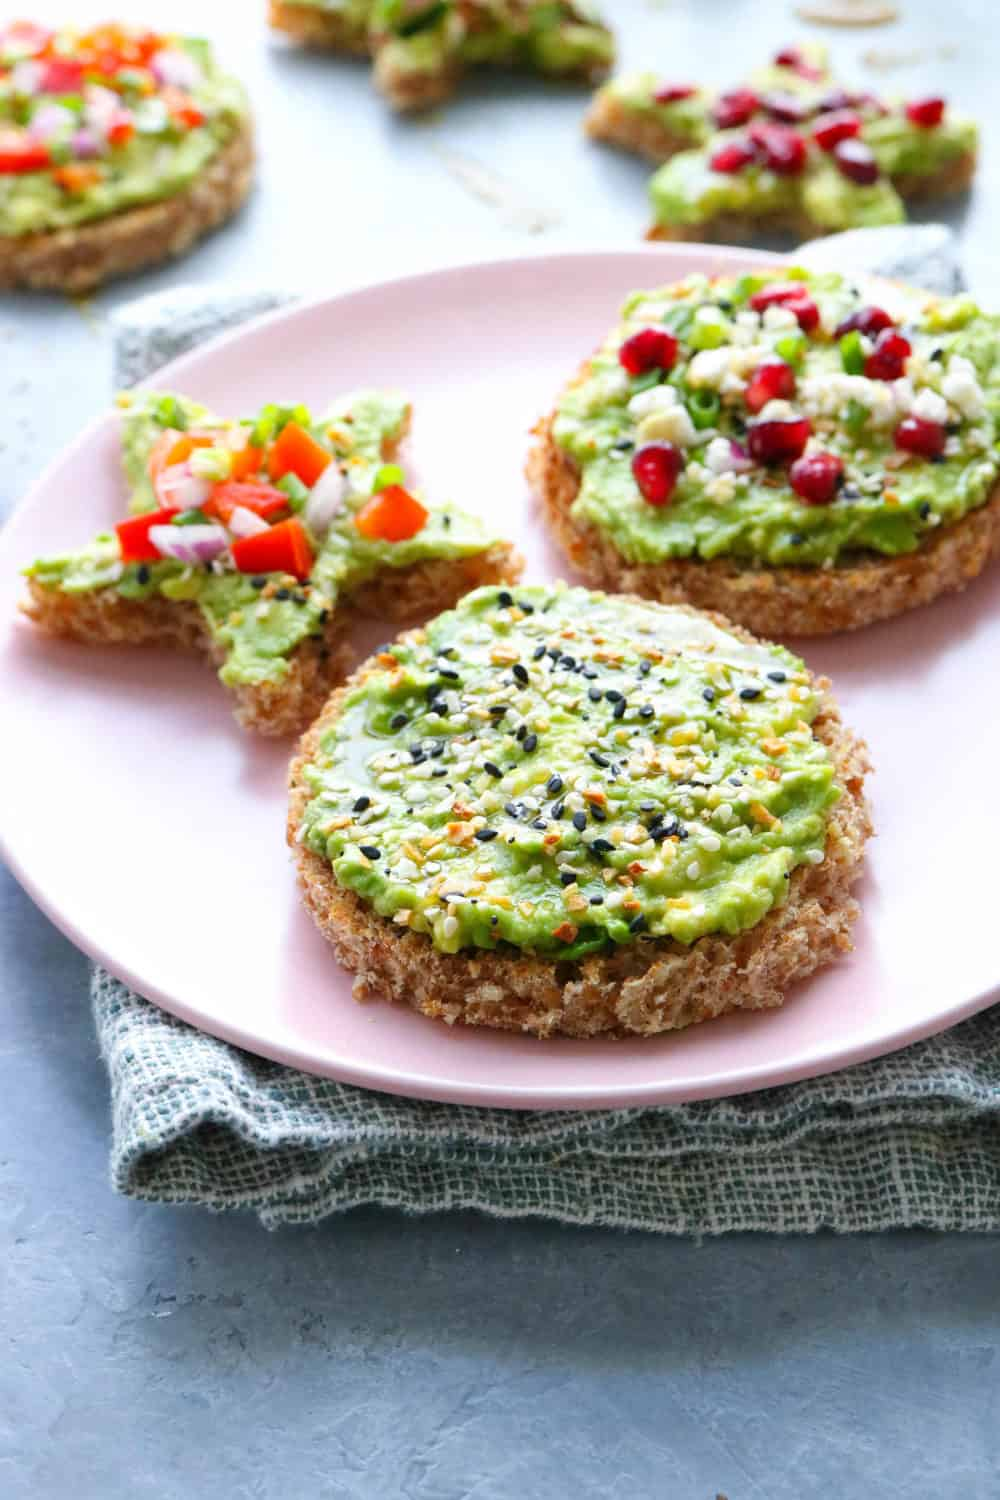 round toast on a pink plate covered in avocado topped with seeds with more behind it